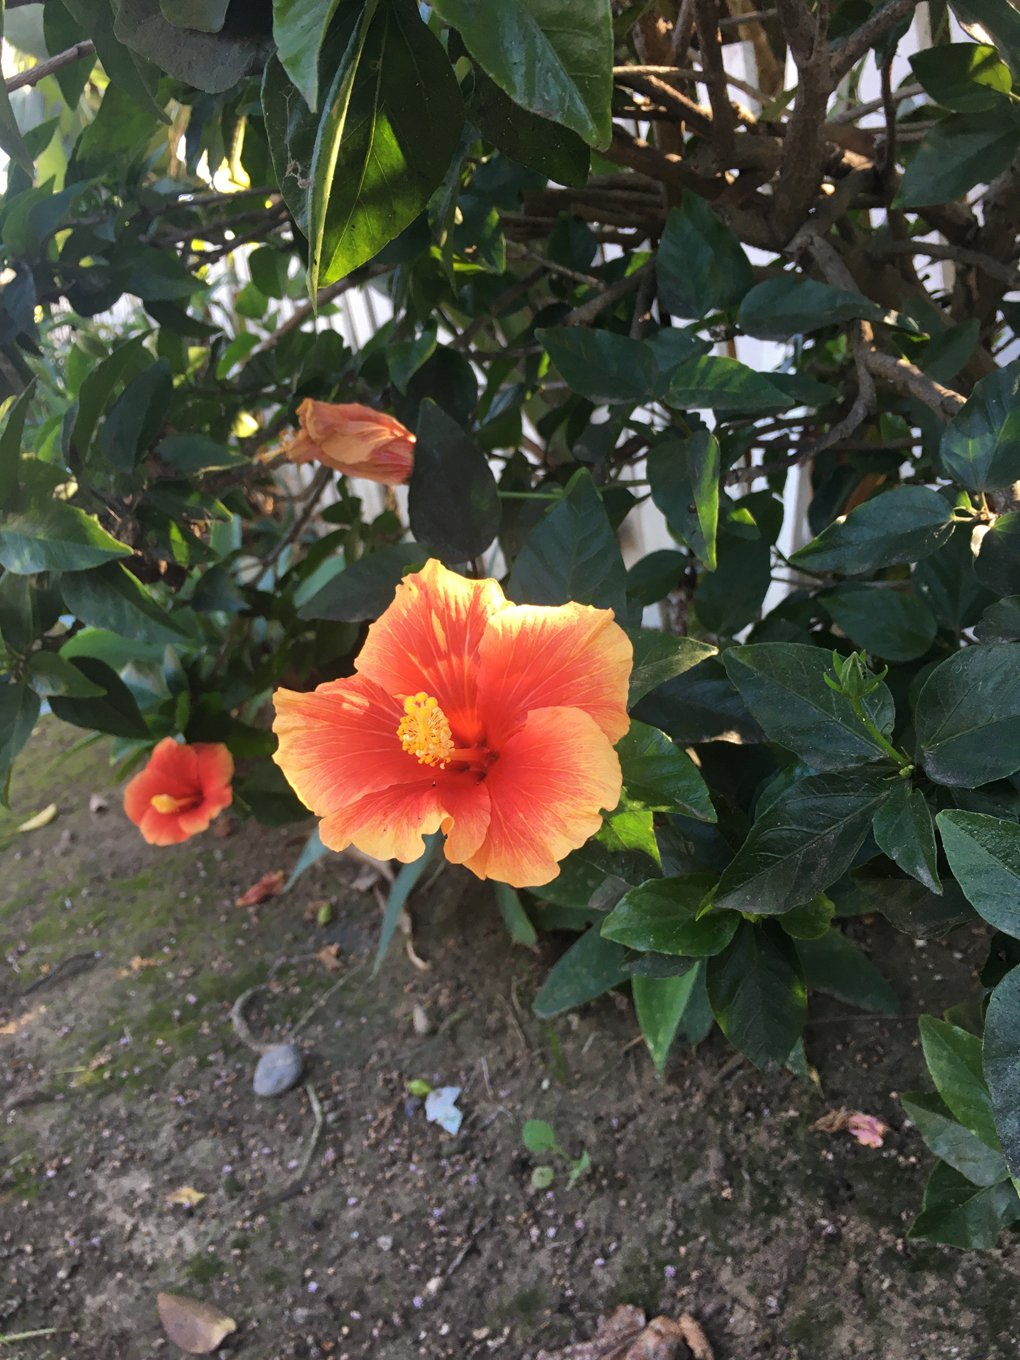 A bright pink and orange hibiscus flower with deep green leaves growing by the street in the middle of winter in California